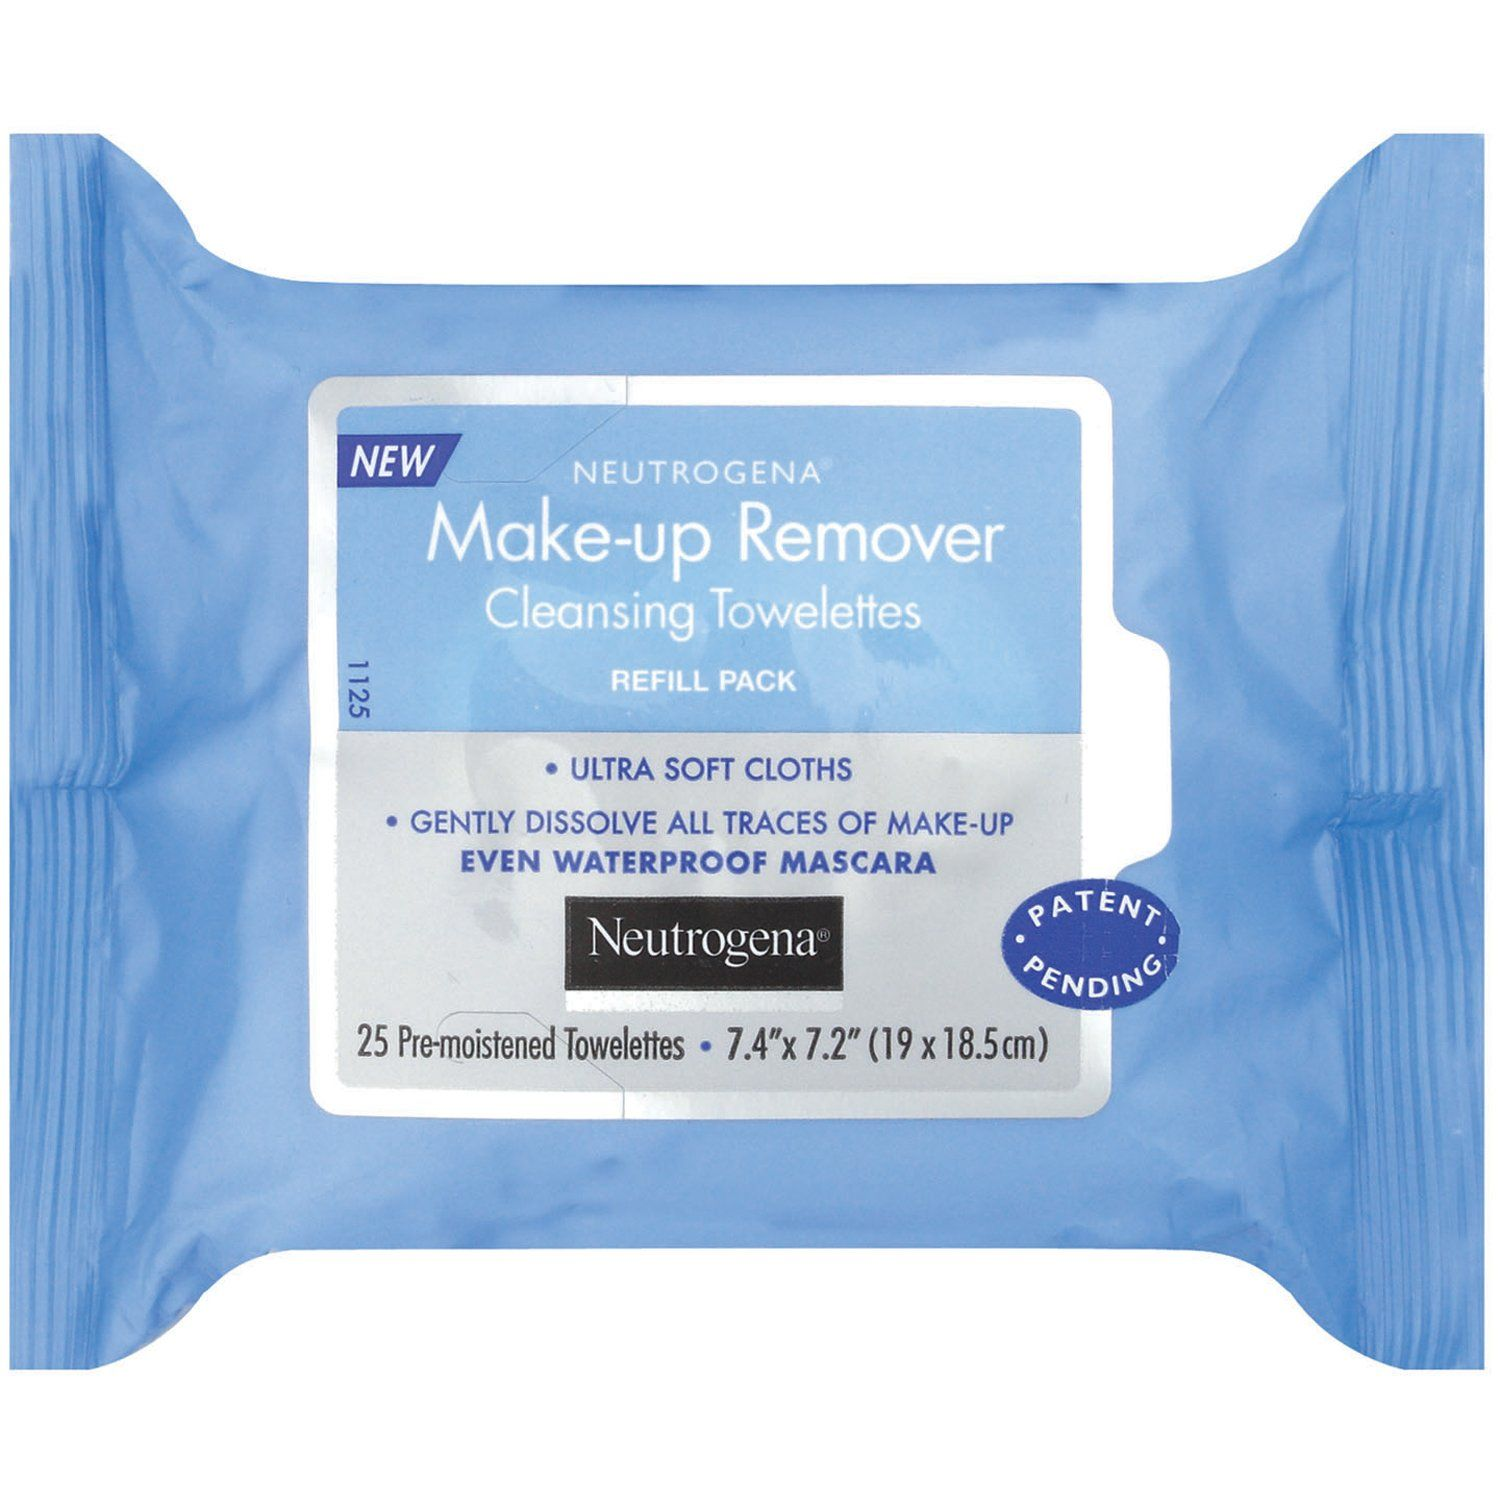 Pin by Erin Moore on beauty shit Makeup remover